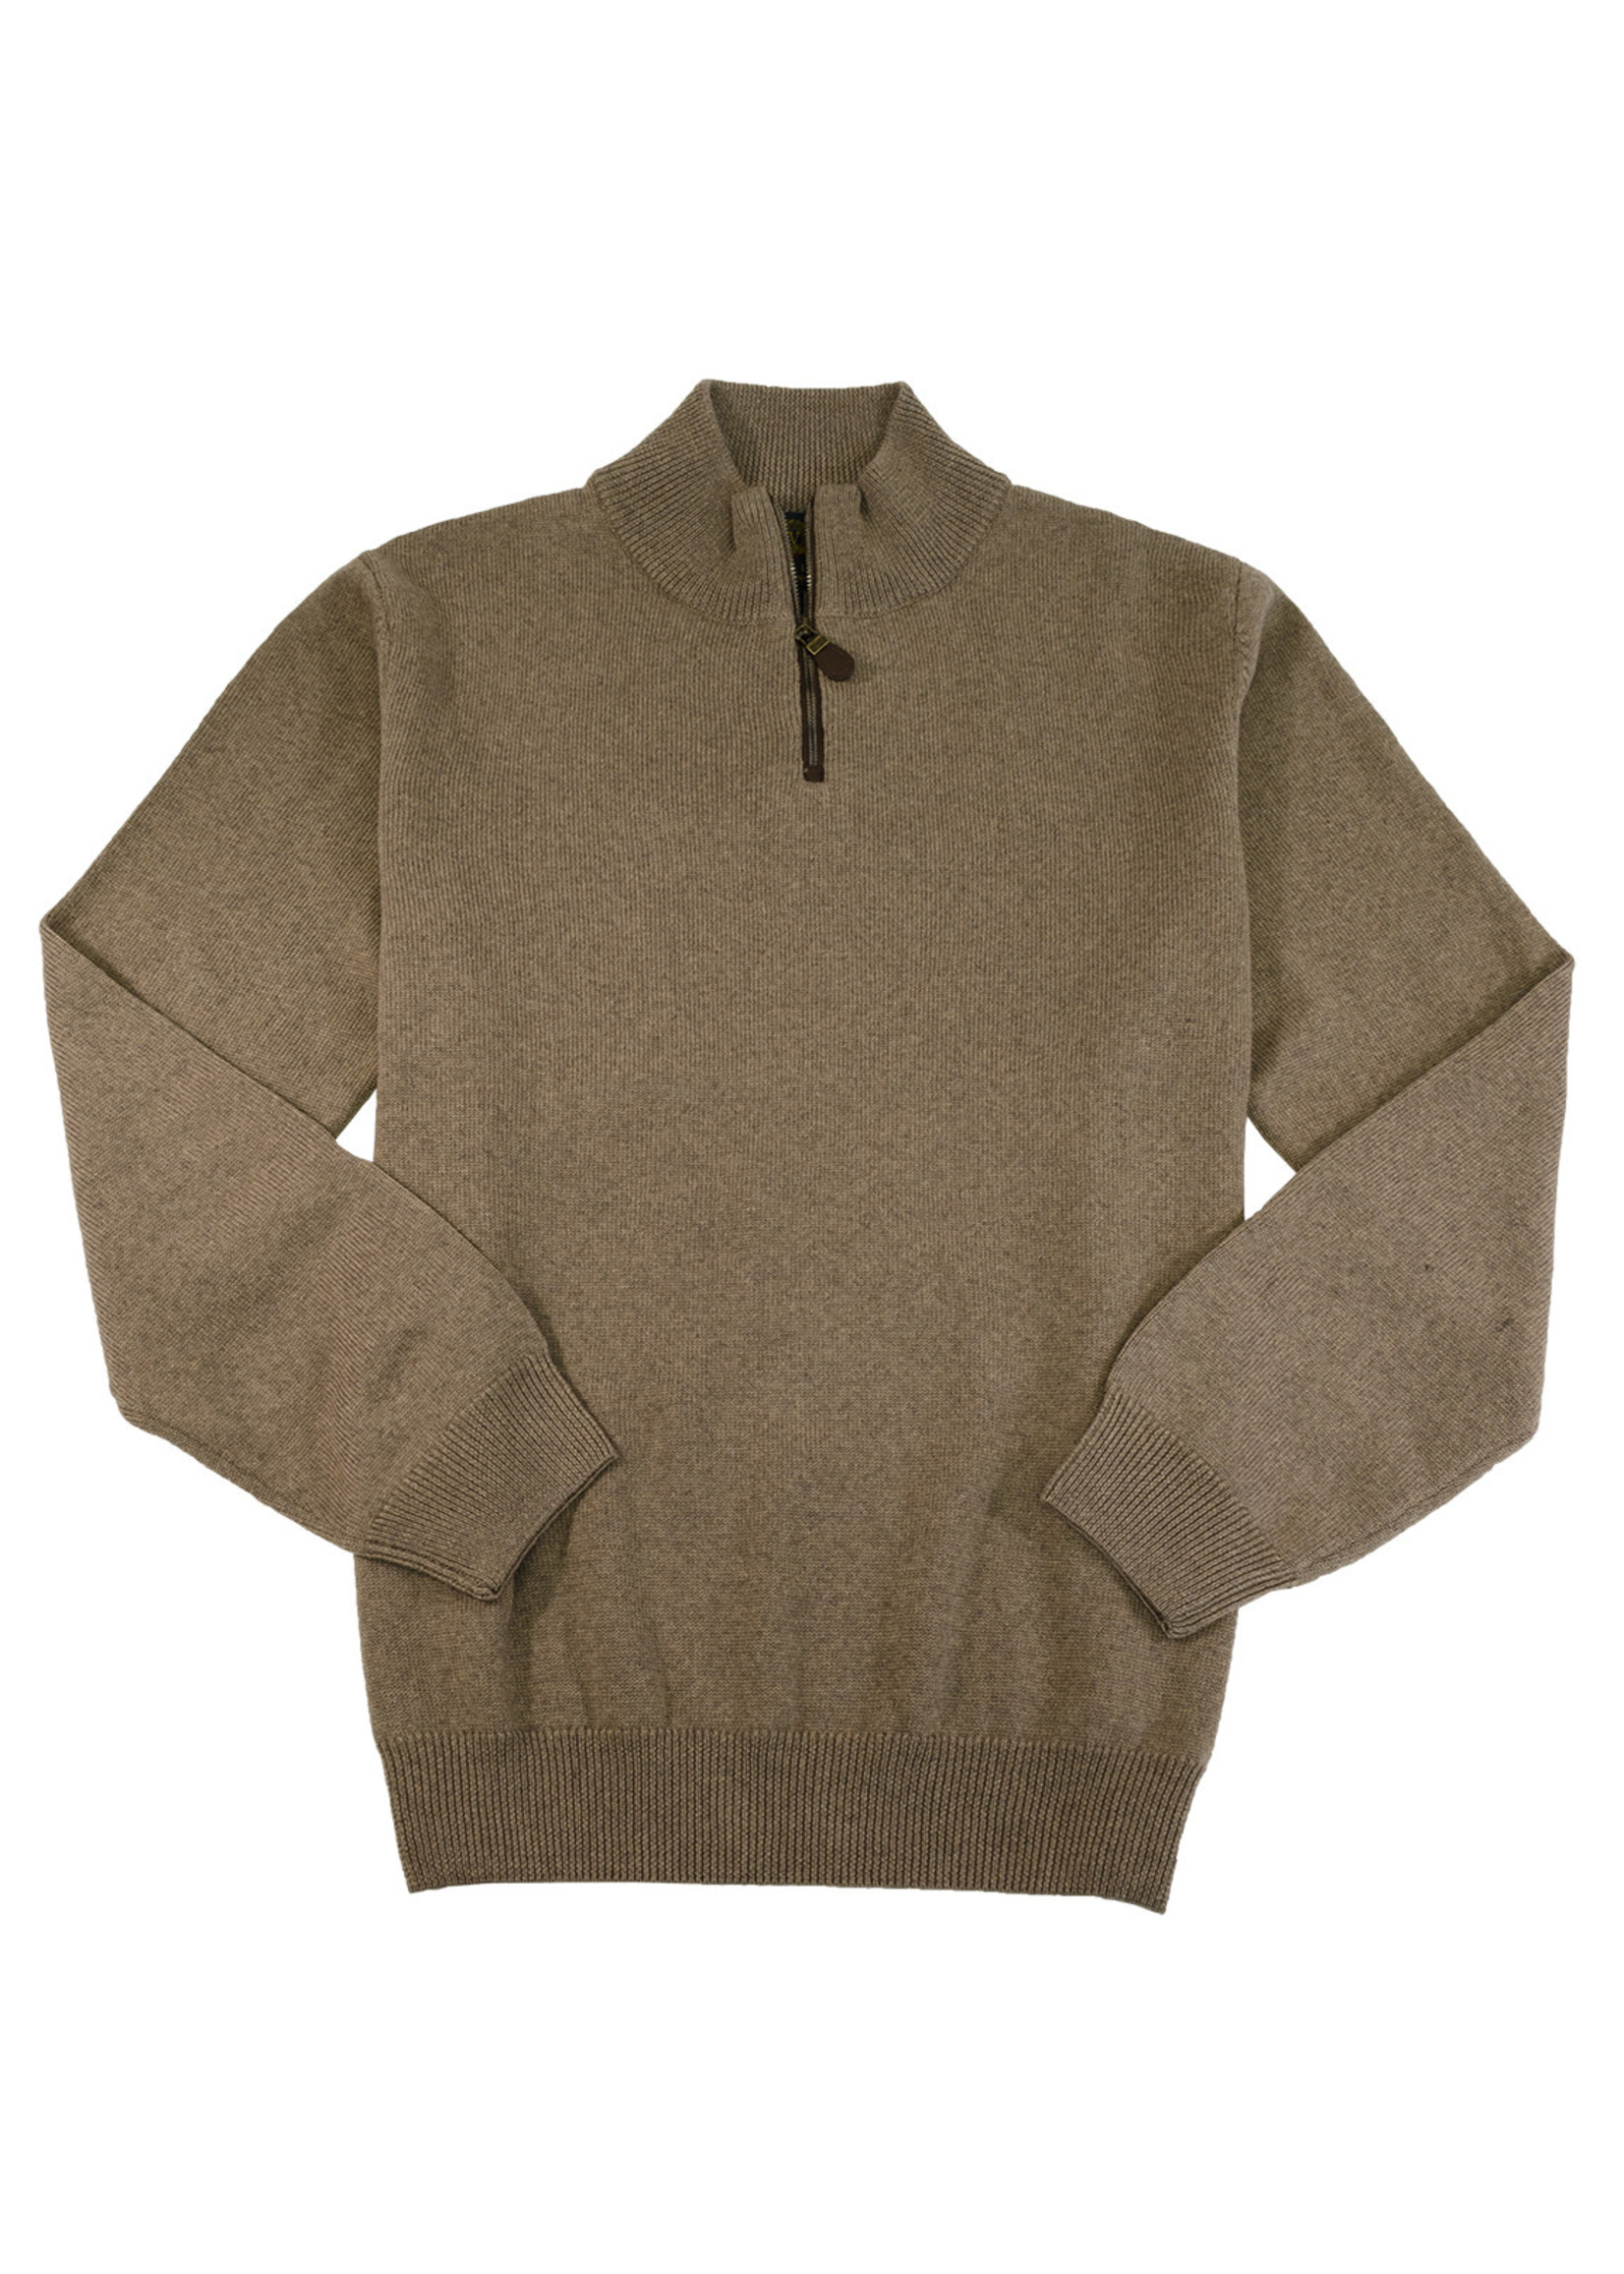 Viyella 1/4 Zip Mock Neck Sweater